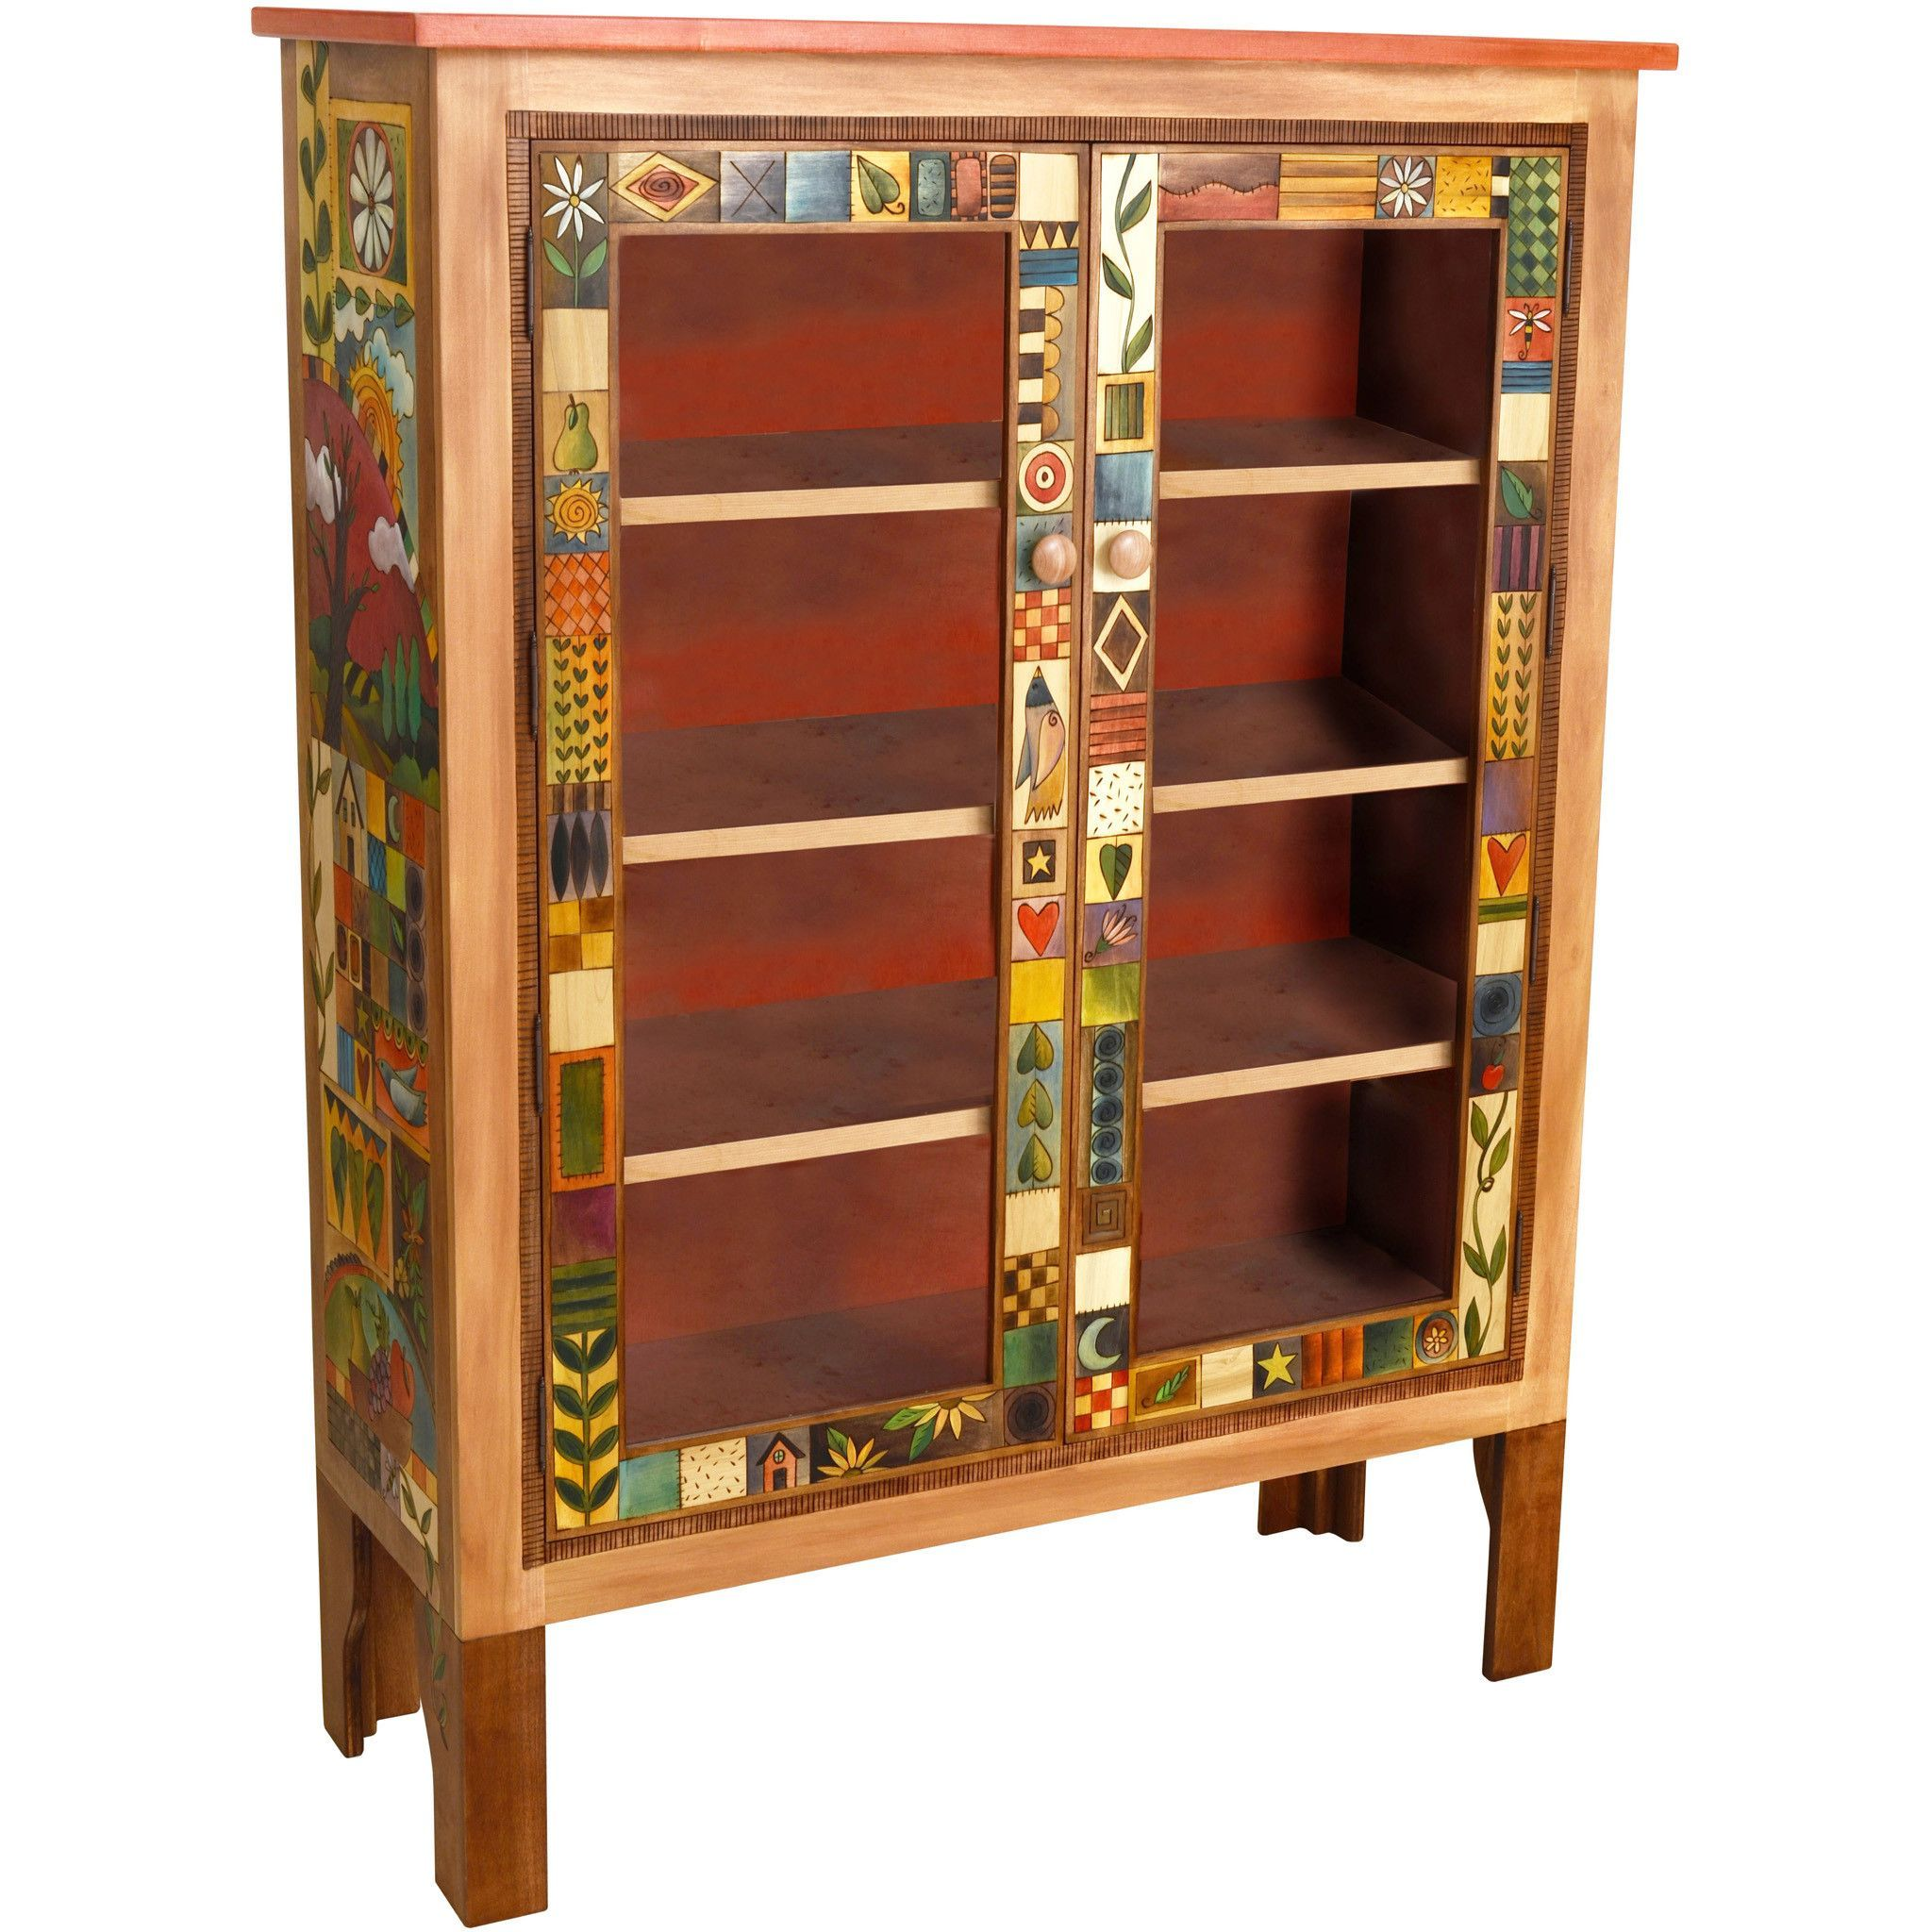 sticks large double door bookcase bcs005-d70951, artistic artisan